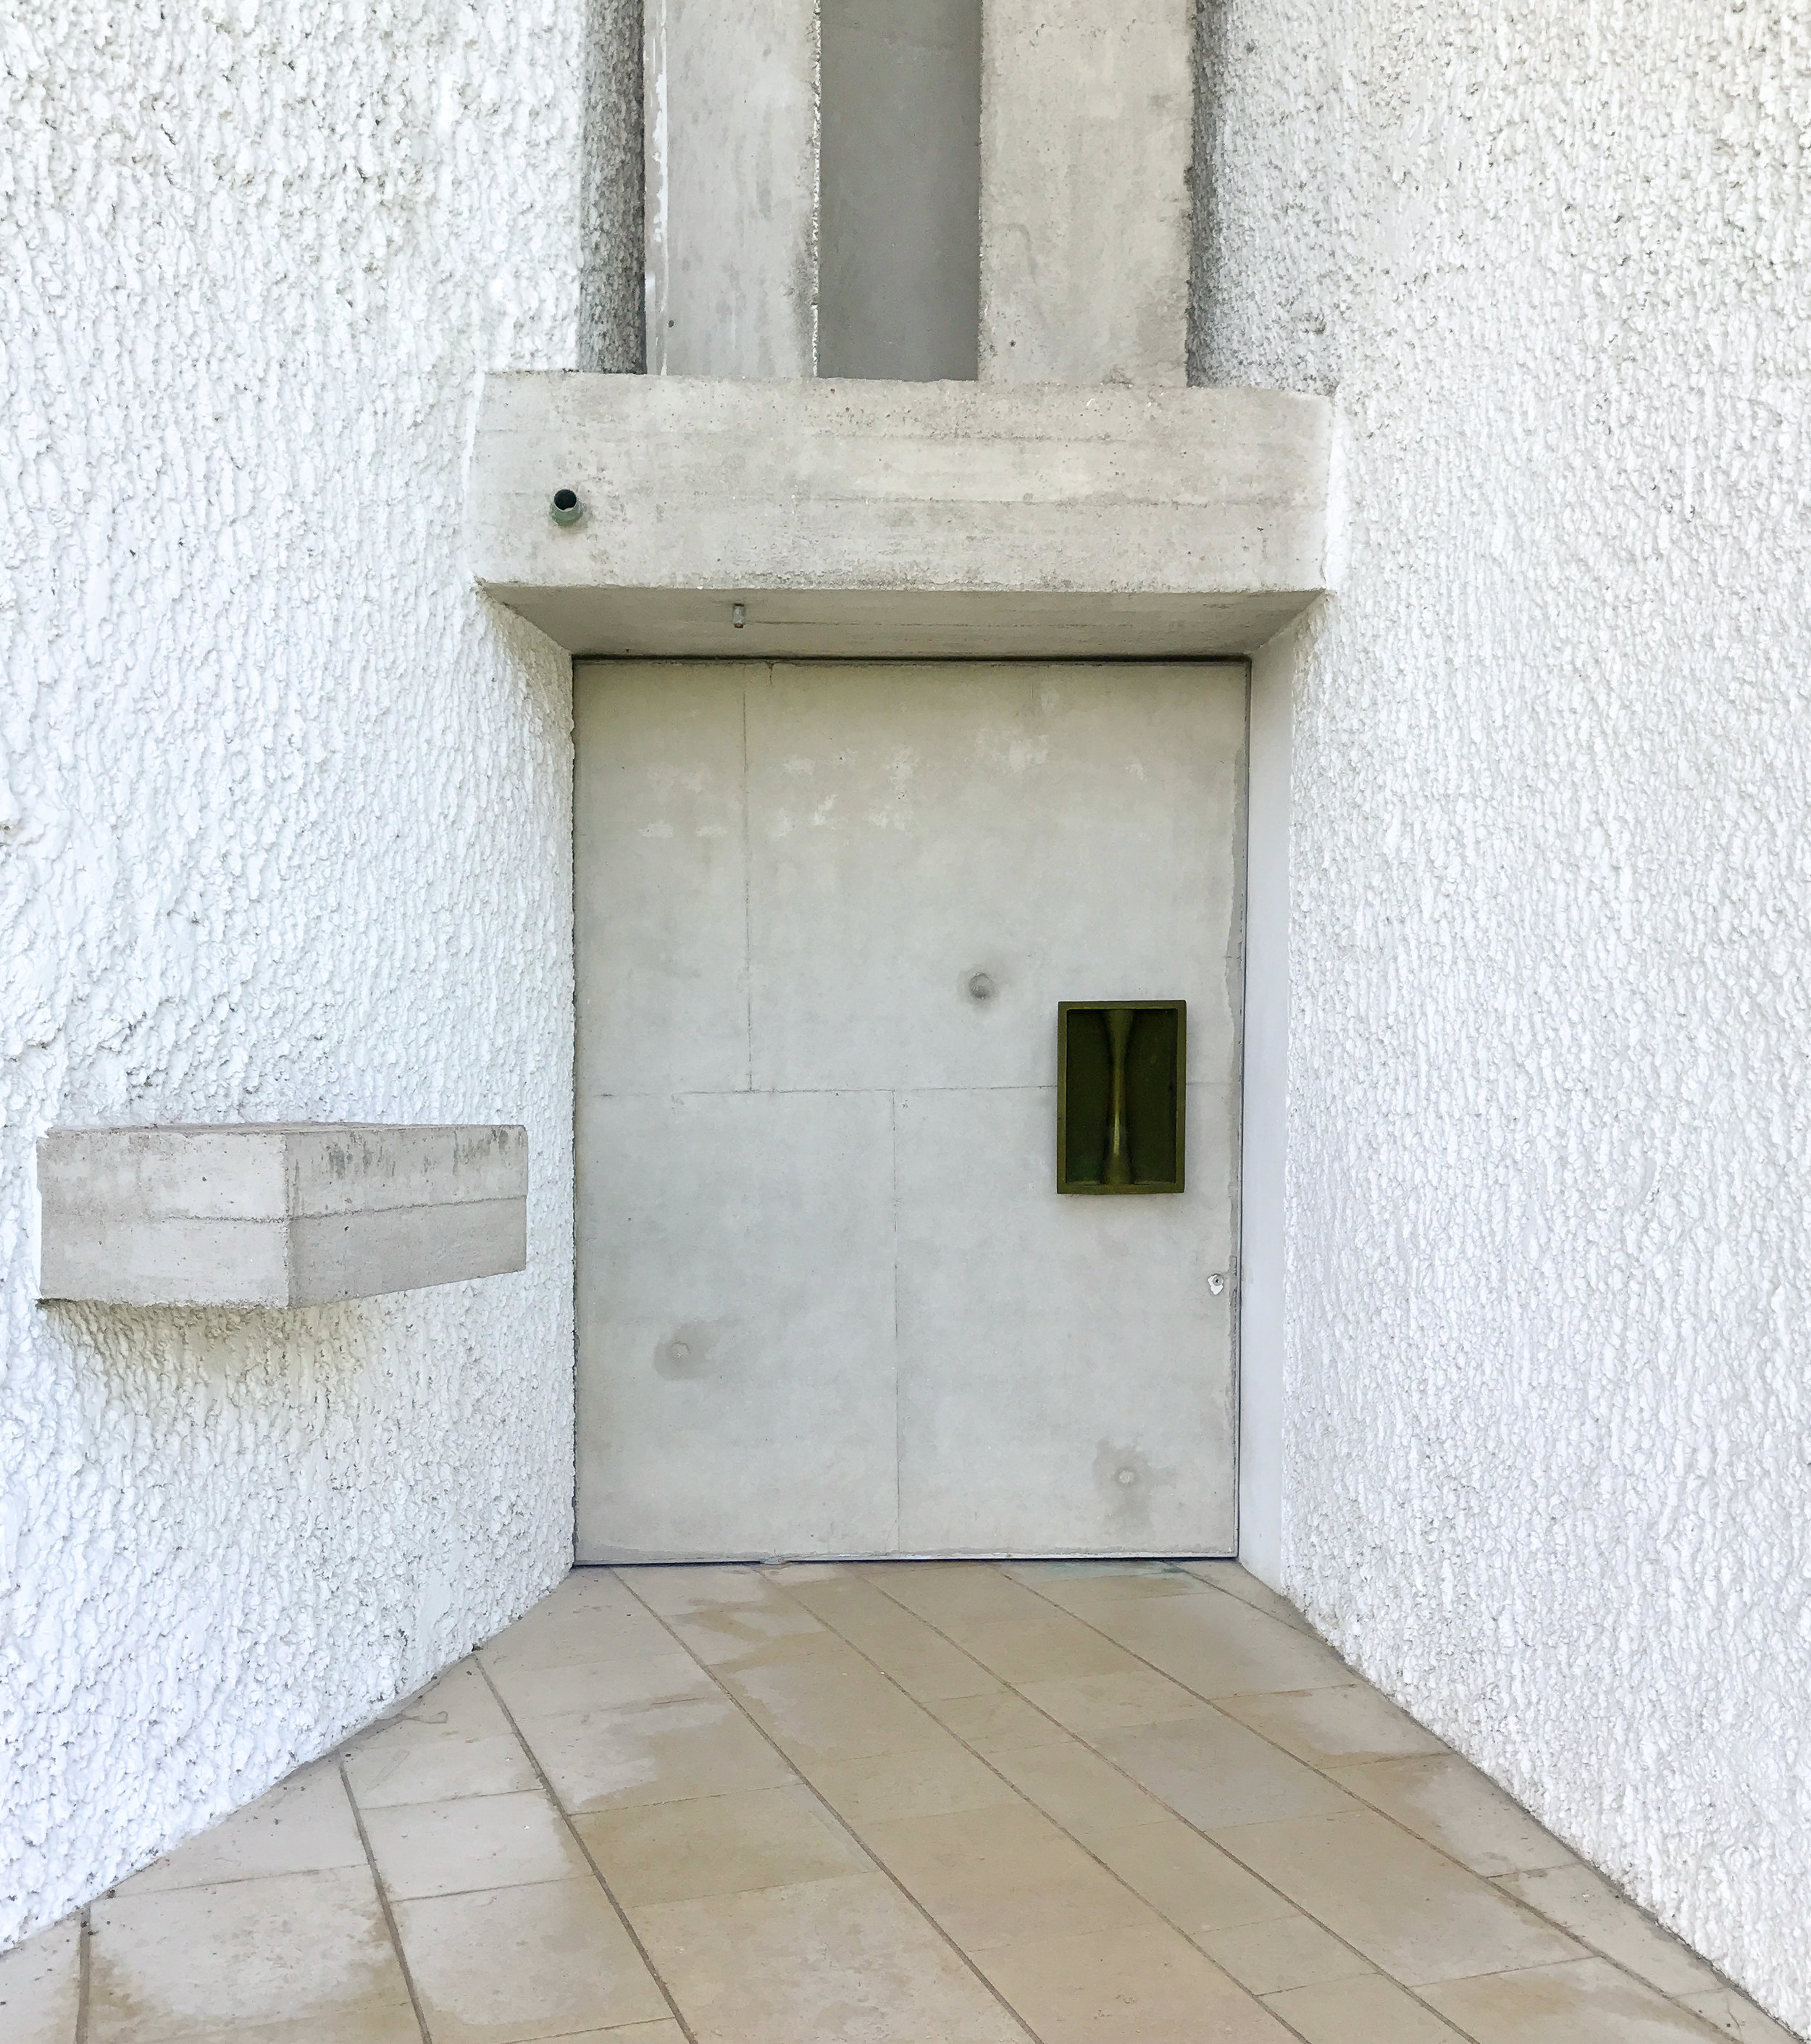 EXTERIOR SANCTUARY DOOR TO INSIDE CHAPEL